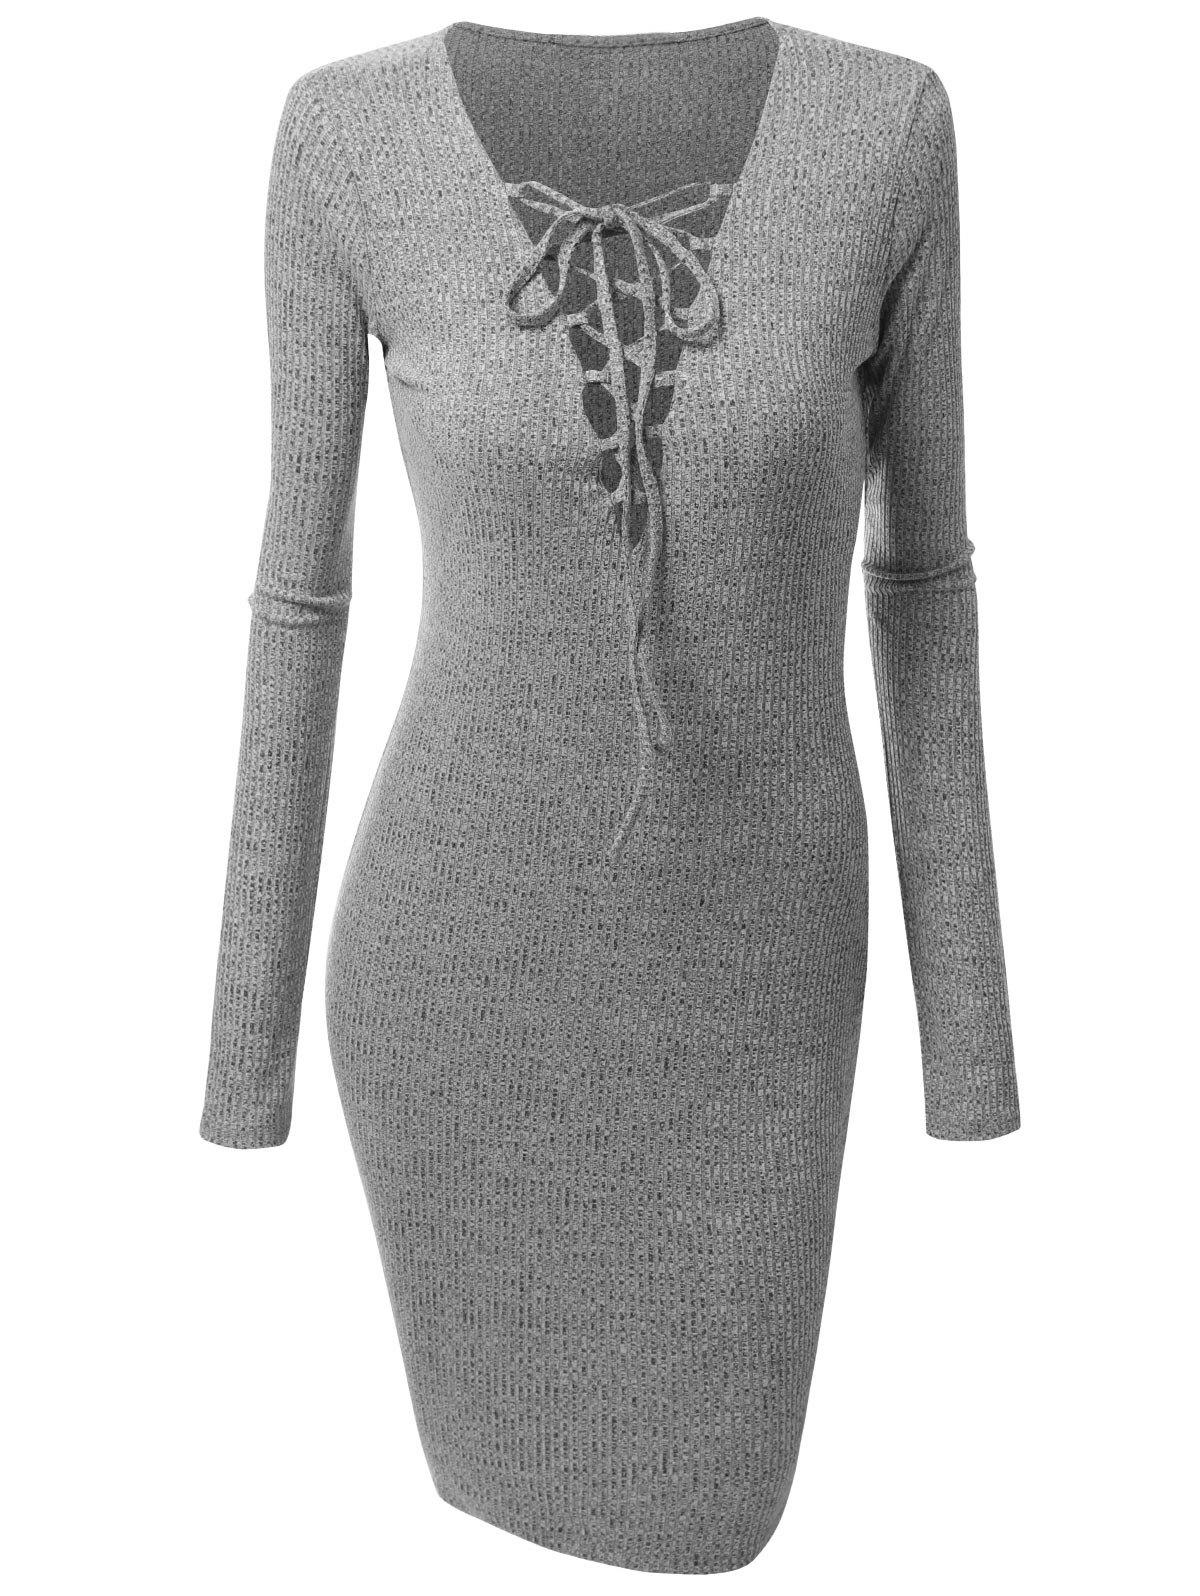 Plus Size Lace Up Knitted Dress